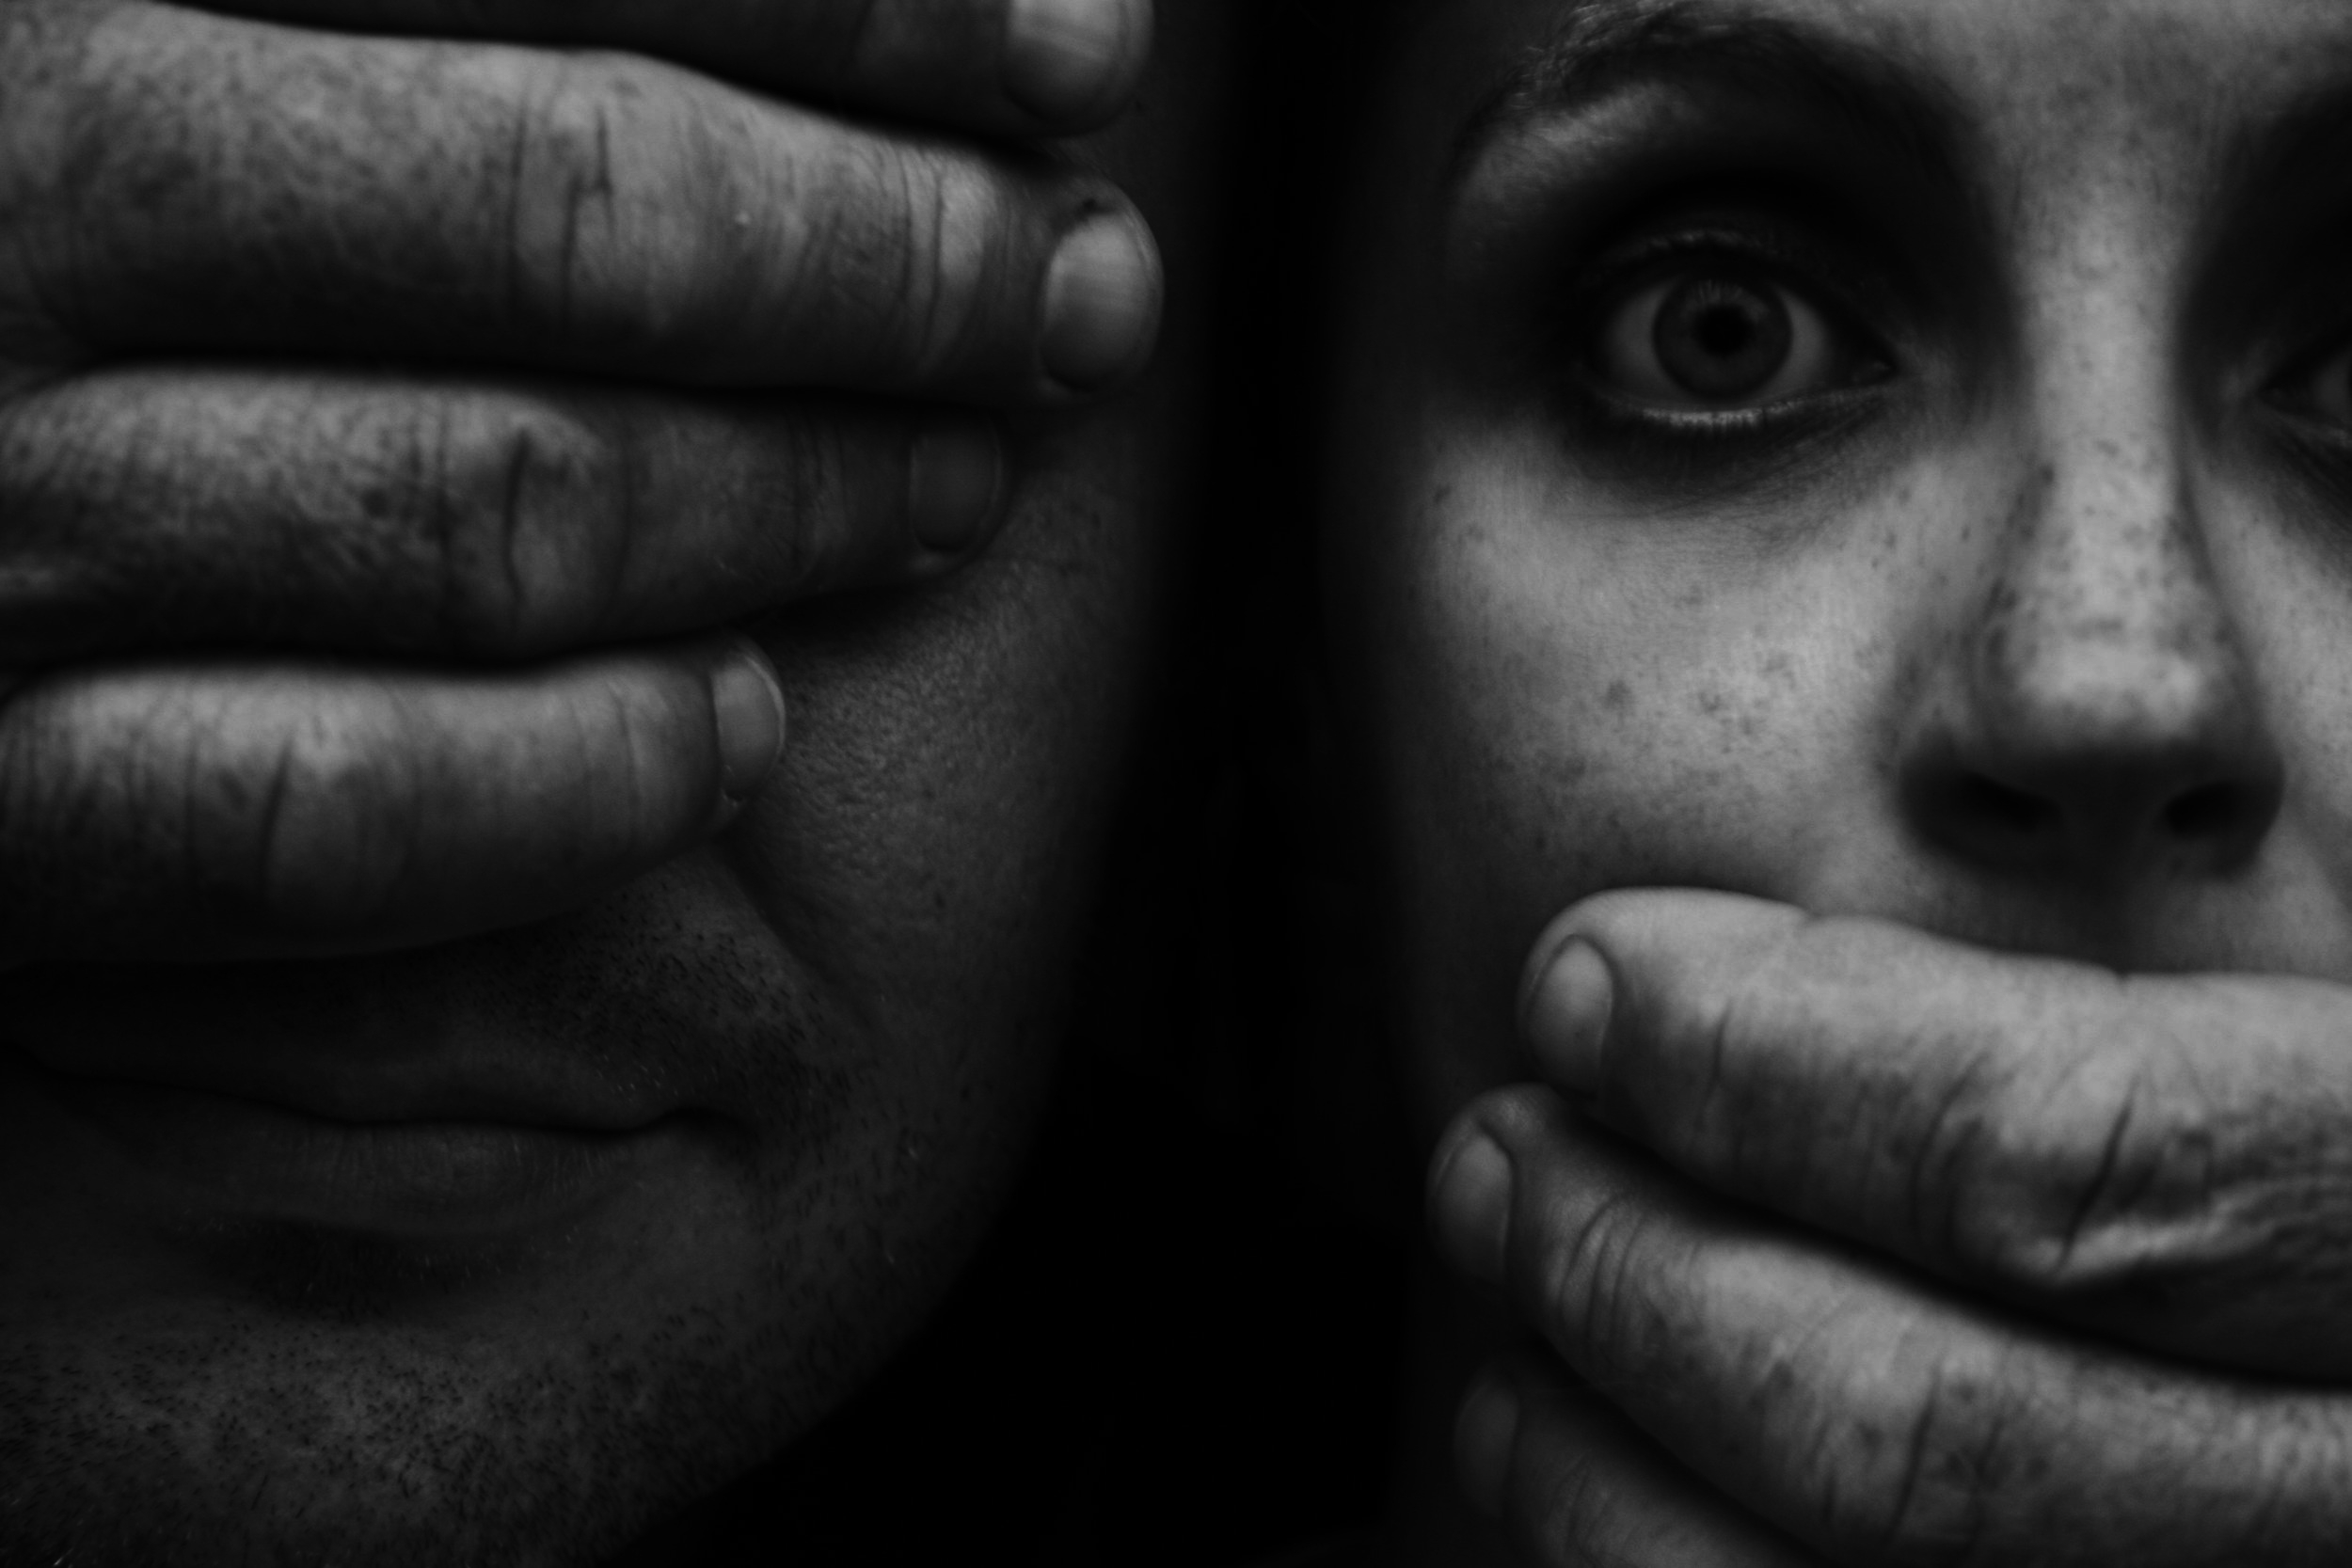 Domestic Violence - Perpetrators of domestic violence use physical, sexual, emotional, and economic tactics in order to isolate, diminish, control, exploit, and terrorise their victims.